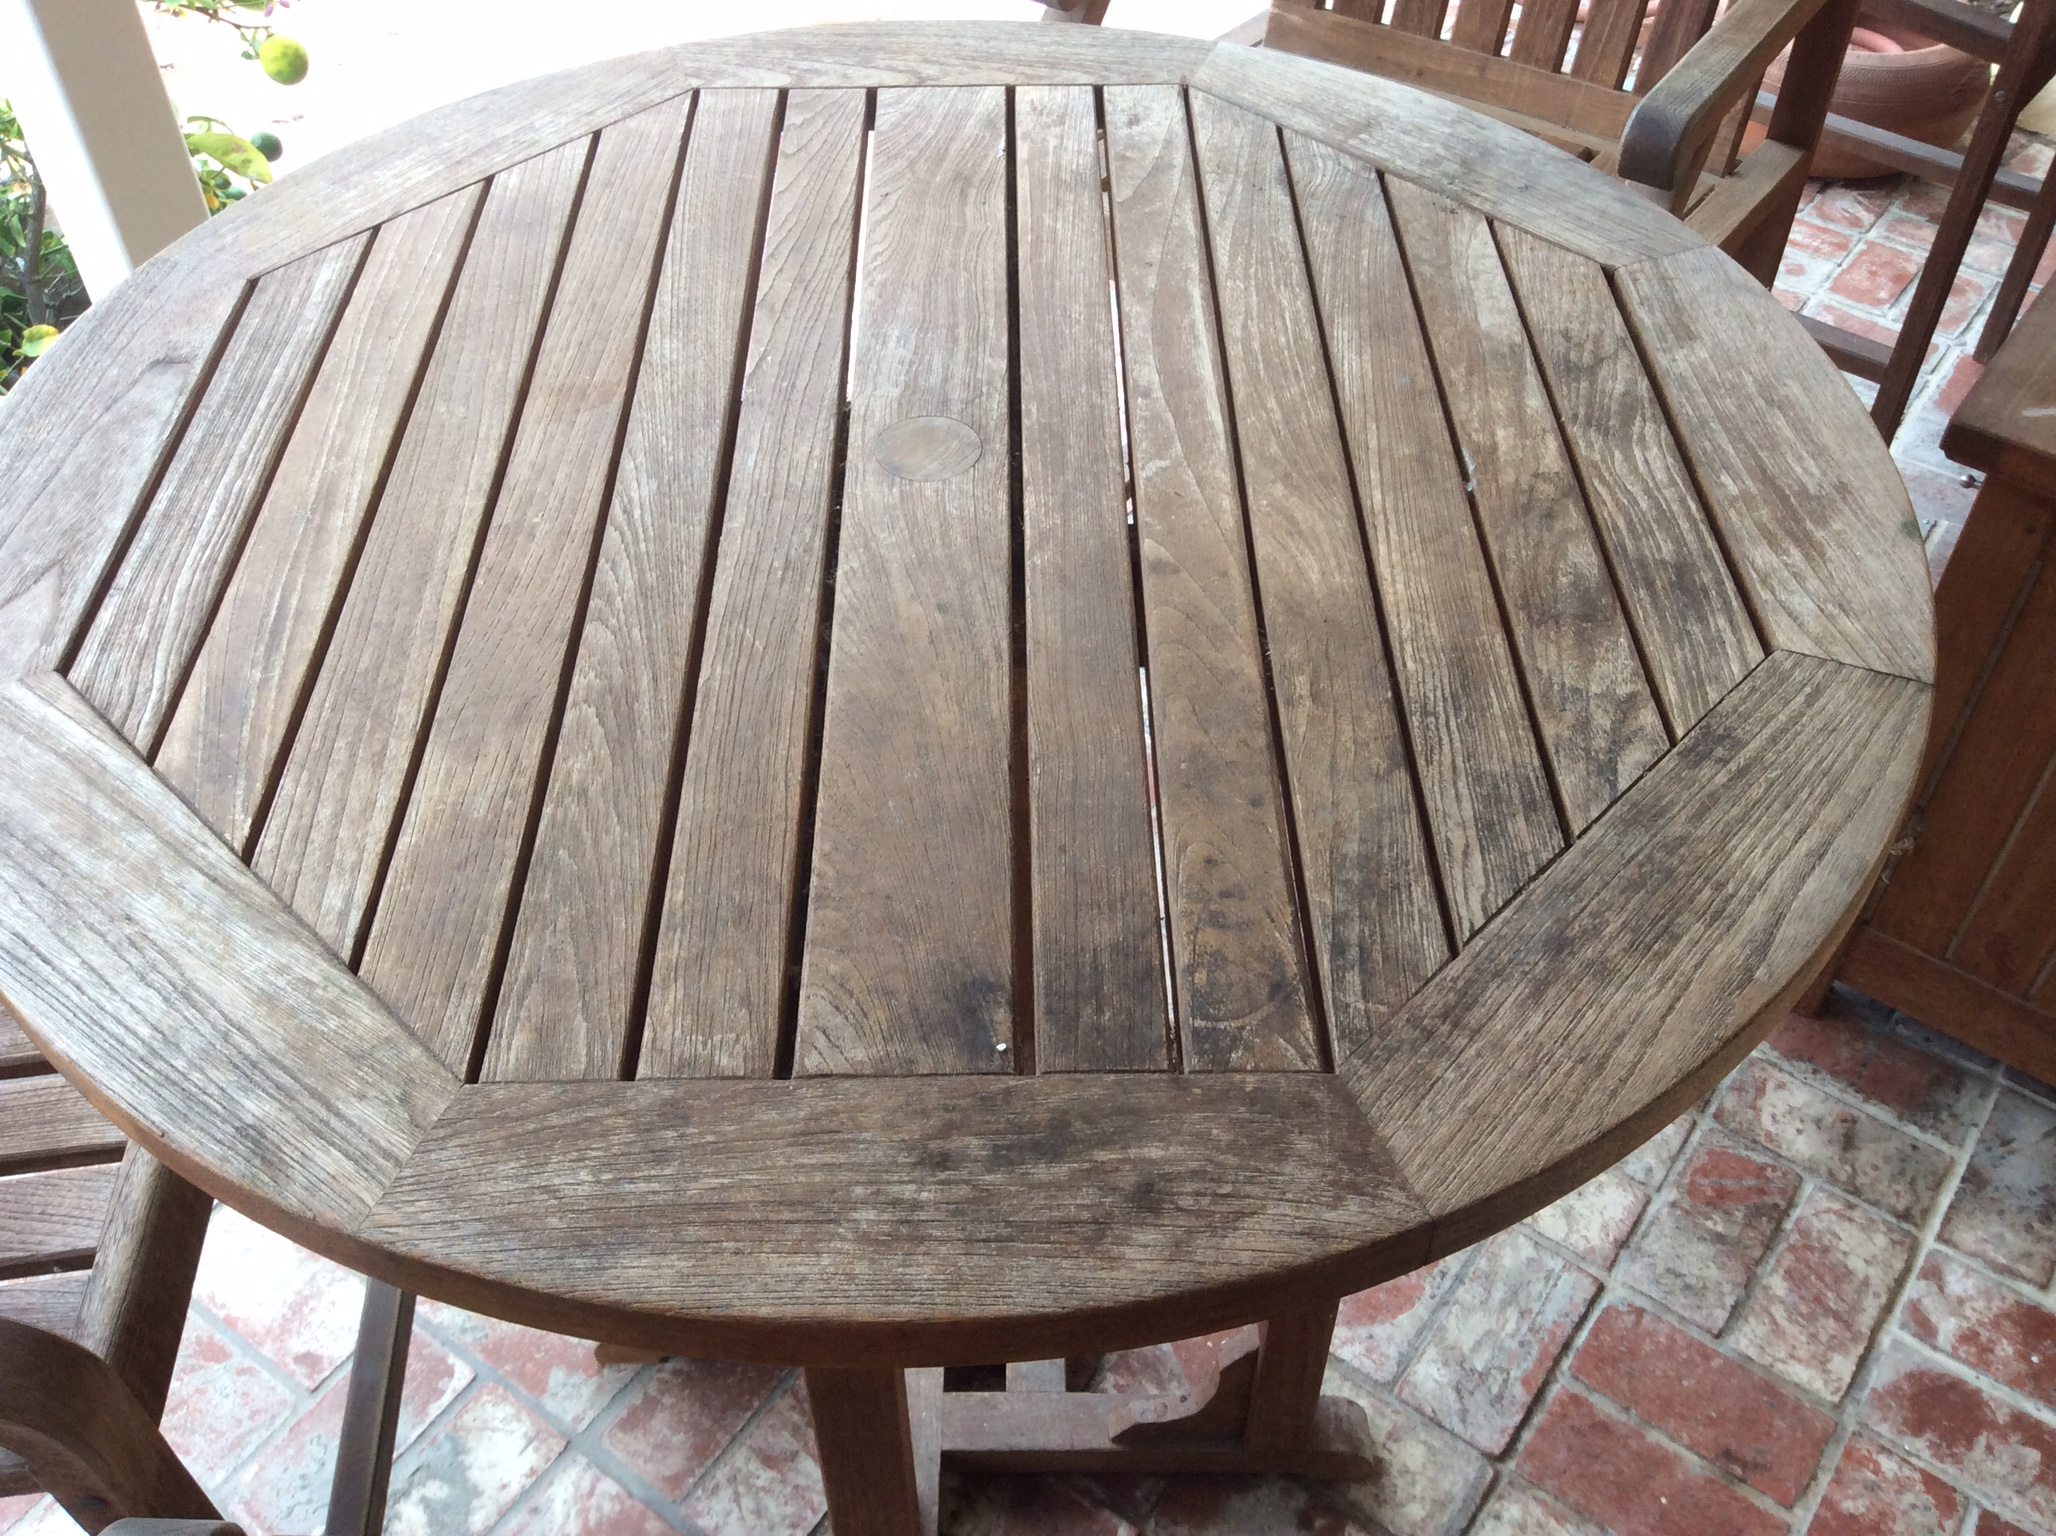 We got to work refinishing the weathered wood  using the right products and  techniques to let that natural beauty shine through again. Refinishing Teak Outdoor Furniture   Wilson Painting